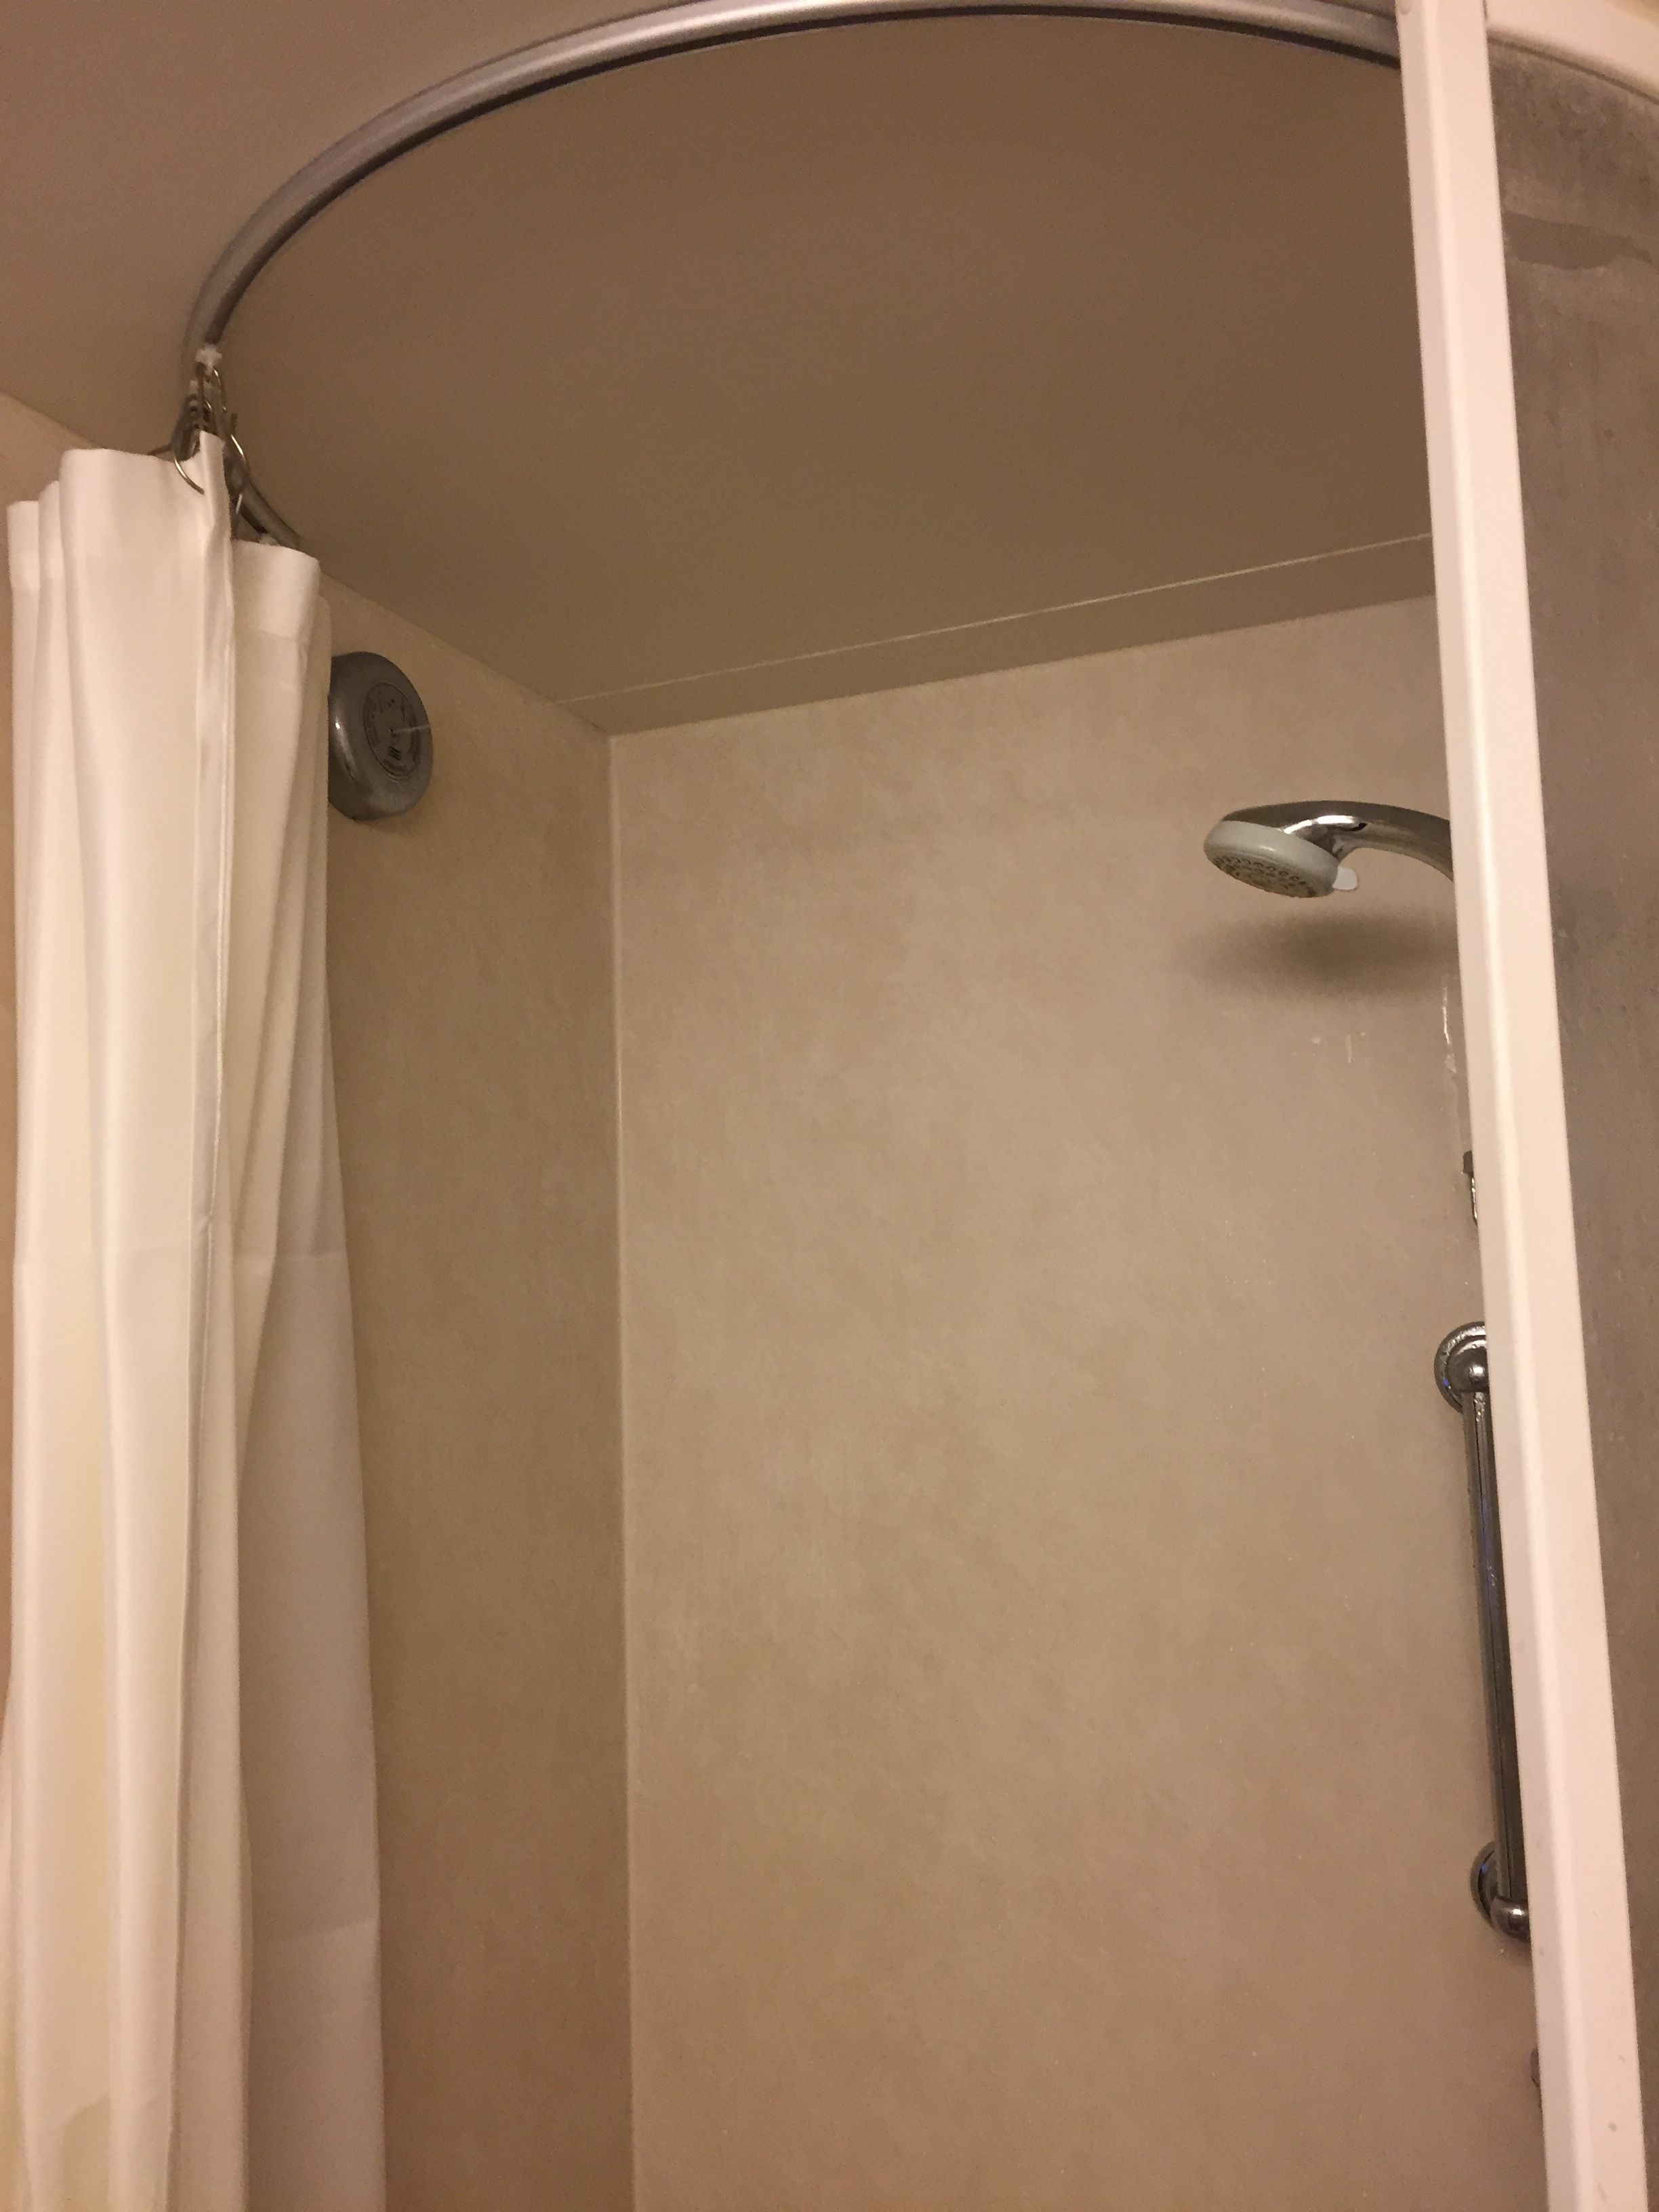 A Small Shower In A Cruise Ship Uses The 6100 Flexible Curtain